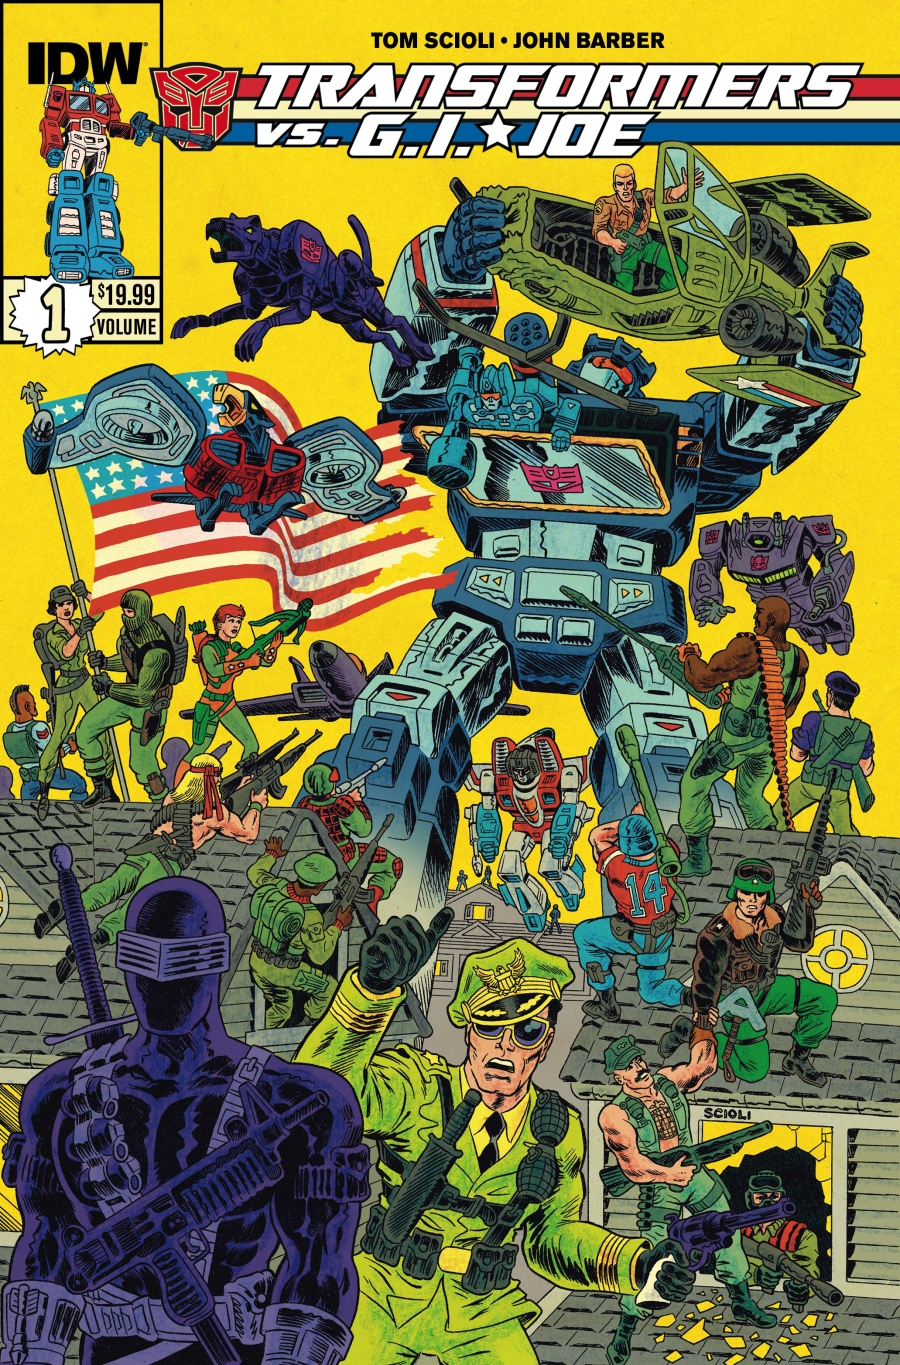 TRANSFORMERS VS GI JOE TP VOL 01 (OCT140502) - Surveillance Port